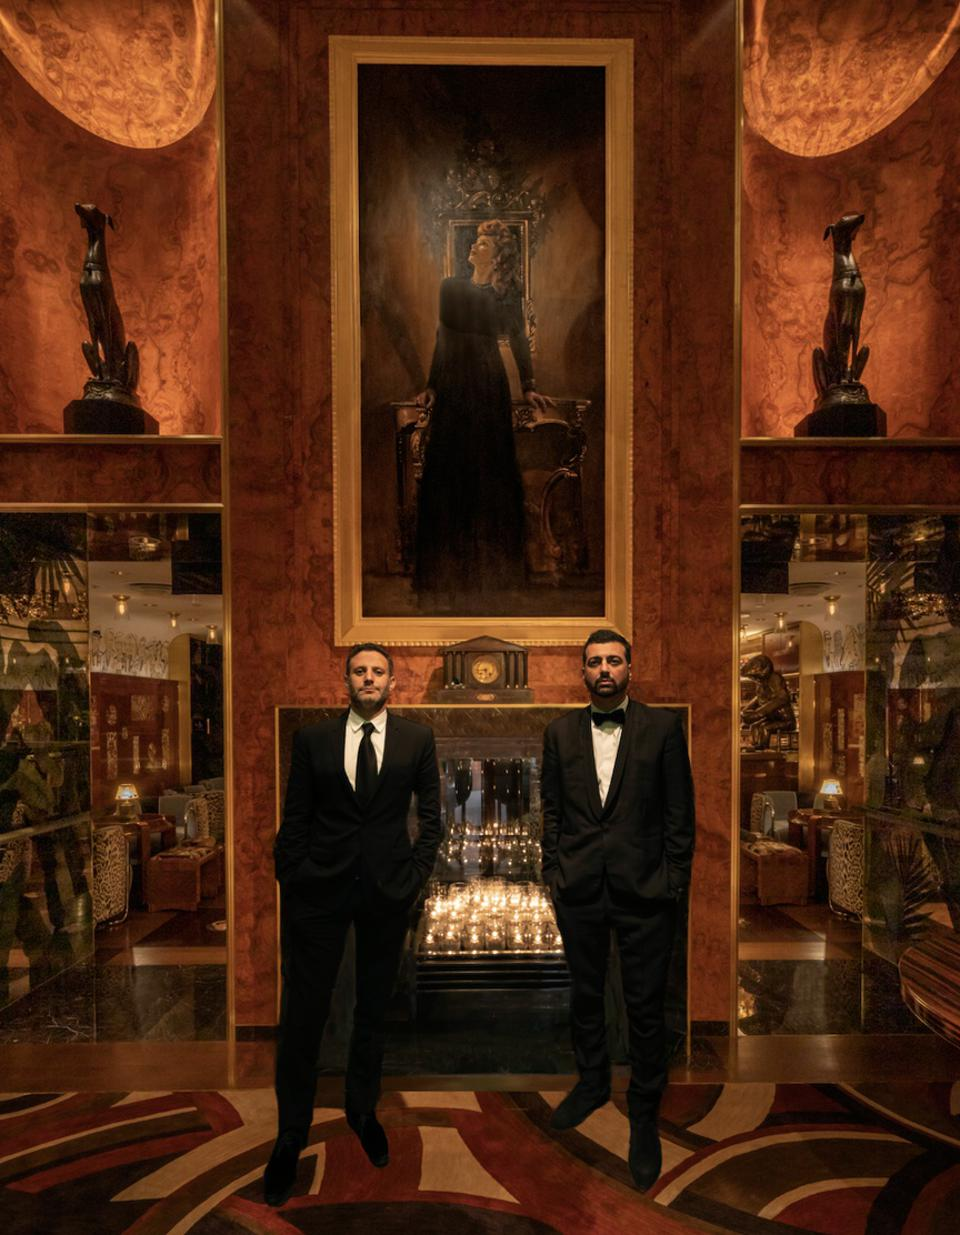 John Terzian and Brian Toll, founders of The h.wood Group at the foyer of Delilah Las Vegas.